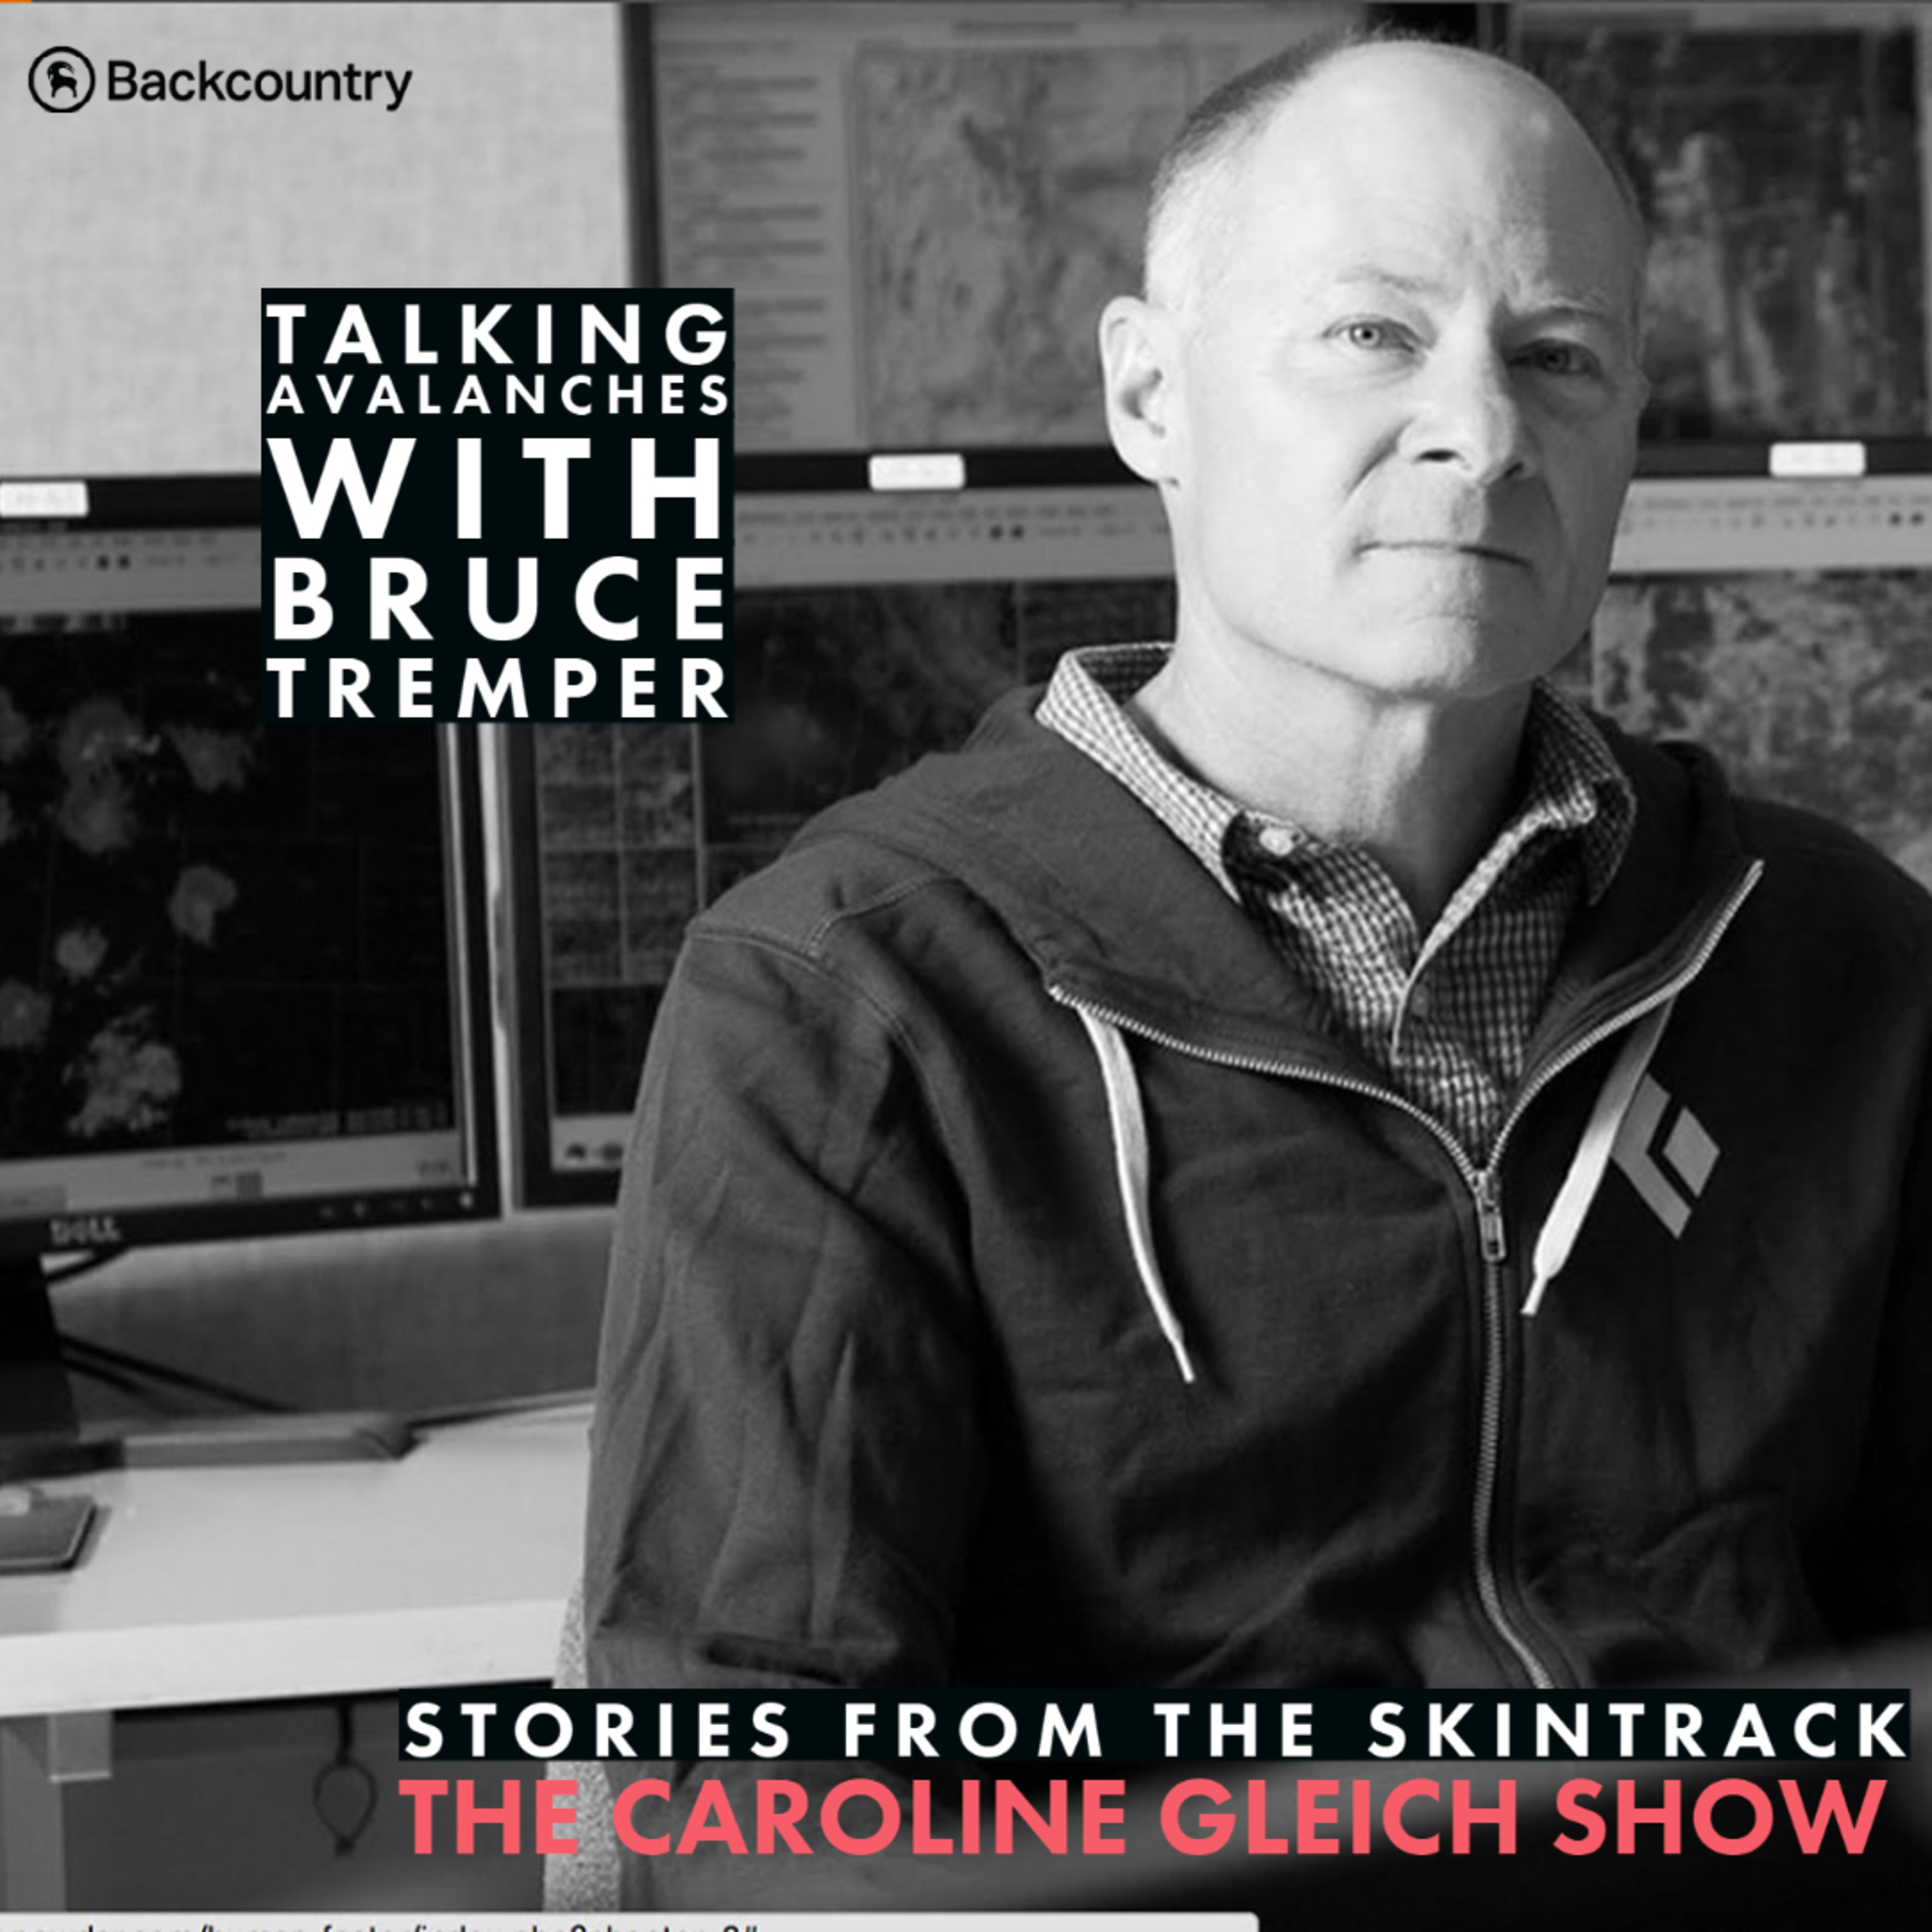 Talking Avalanches with Bruce Tremper: Stories From the Skintrack Episode 1